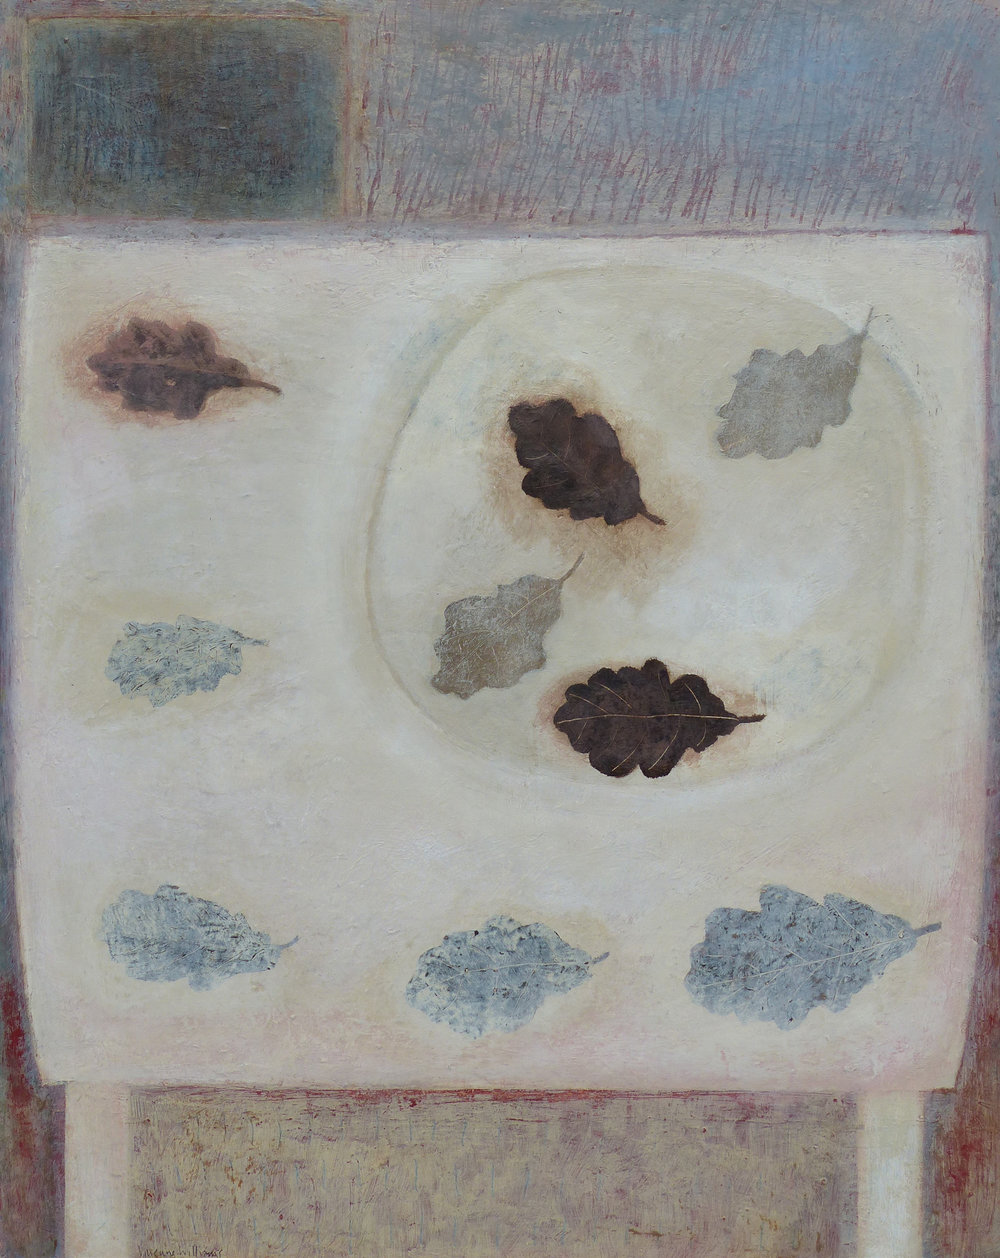 Winter Leaves, 51cm x 41cm, 2016